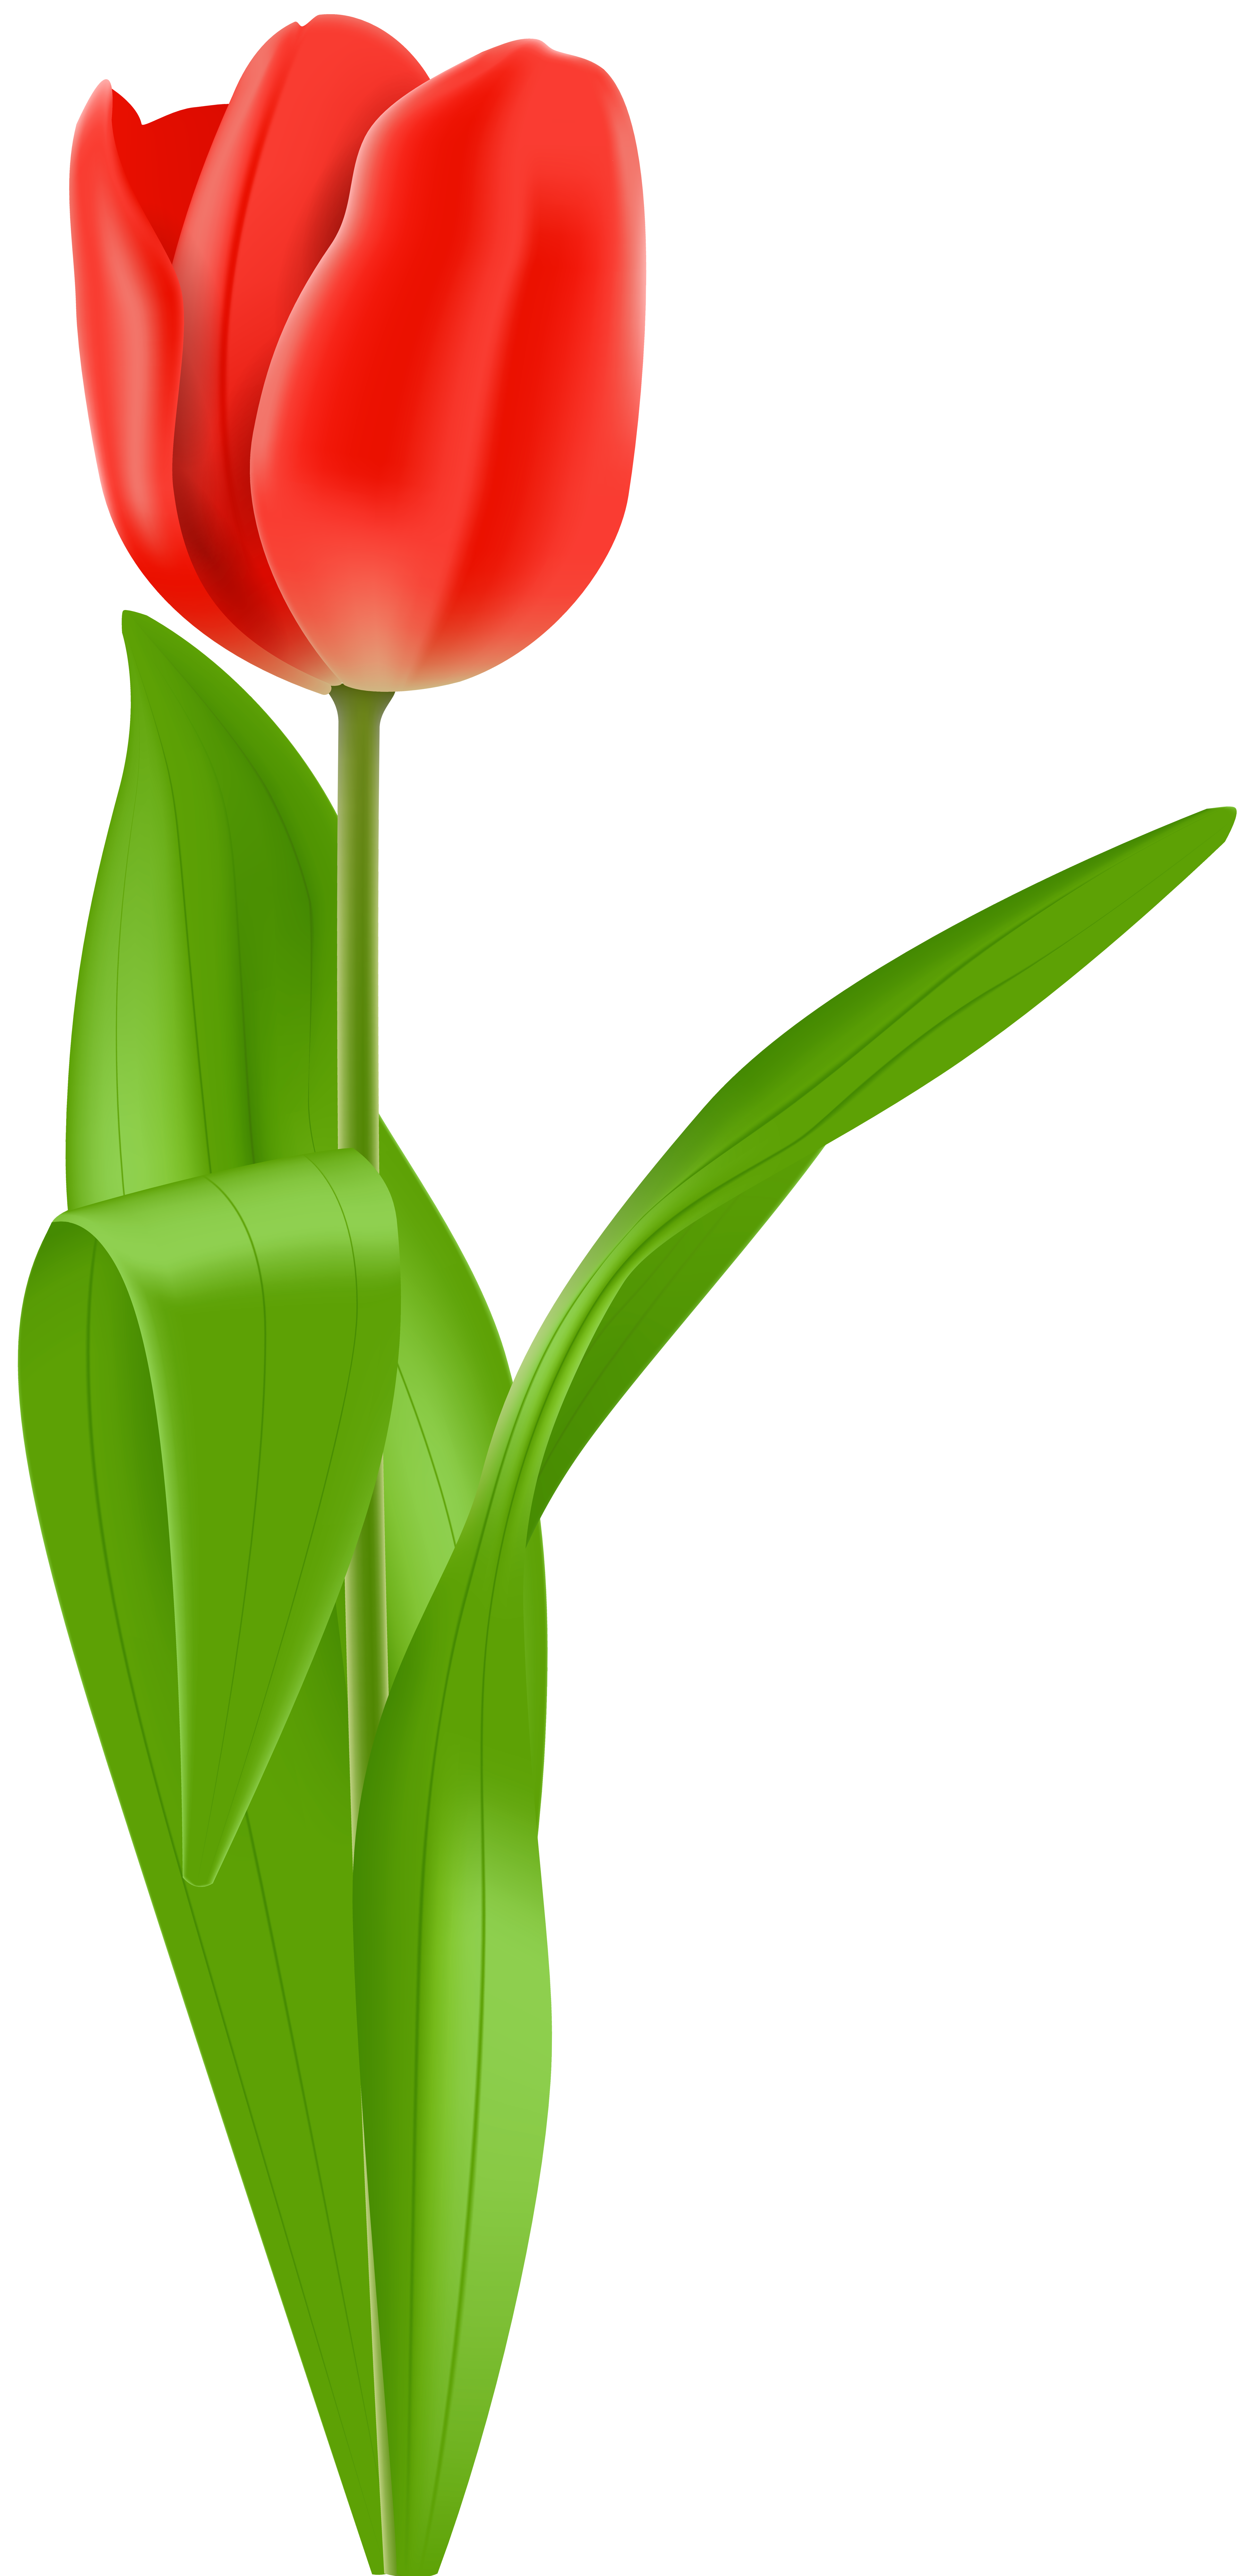 Red tulip clipart vector transparent stock Red Tulip PNG Clip Art Image   Gallery Yopriceville - High ... vector transparent stock